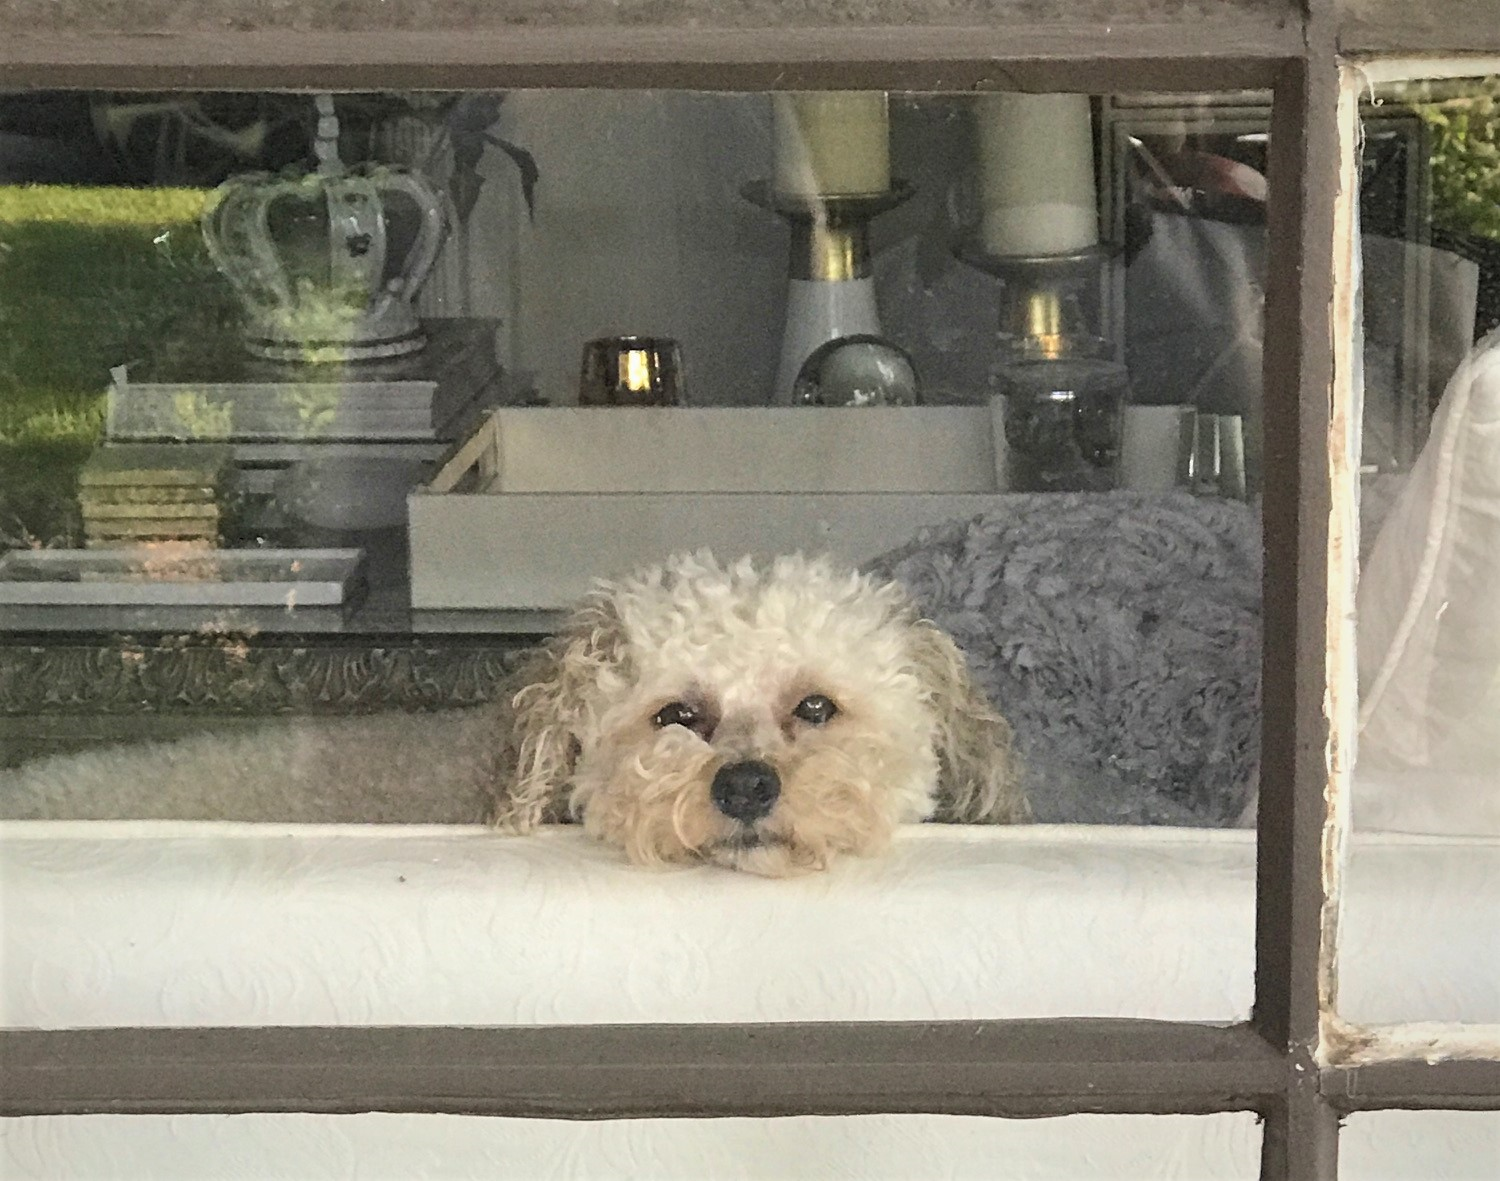 A fluffy white dog looks longingly out of a window.